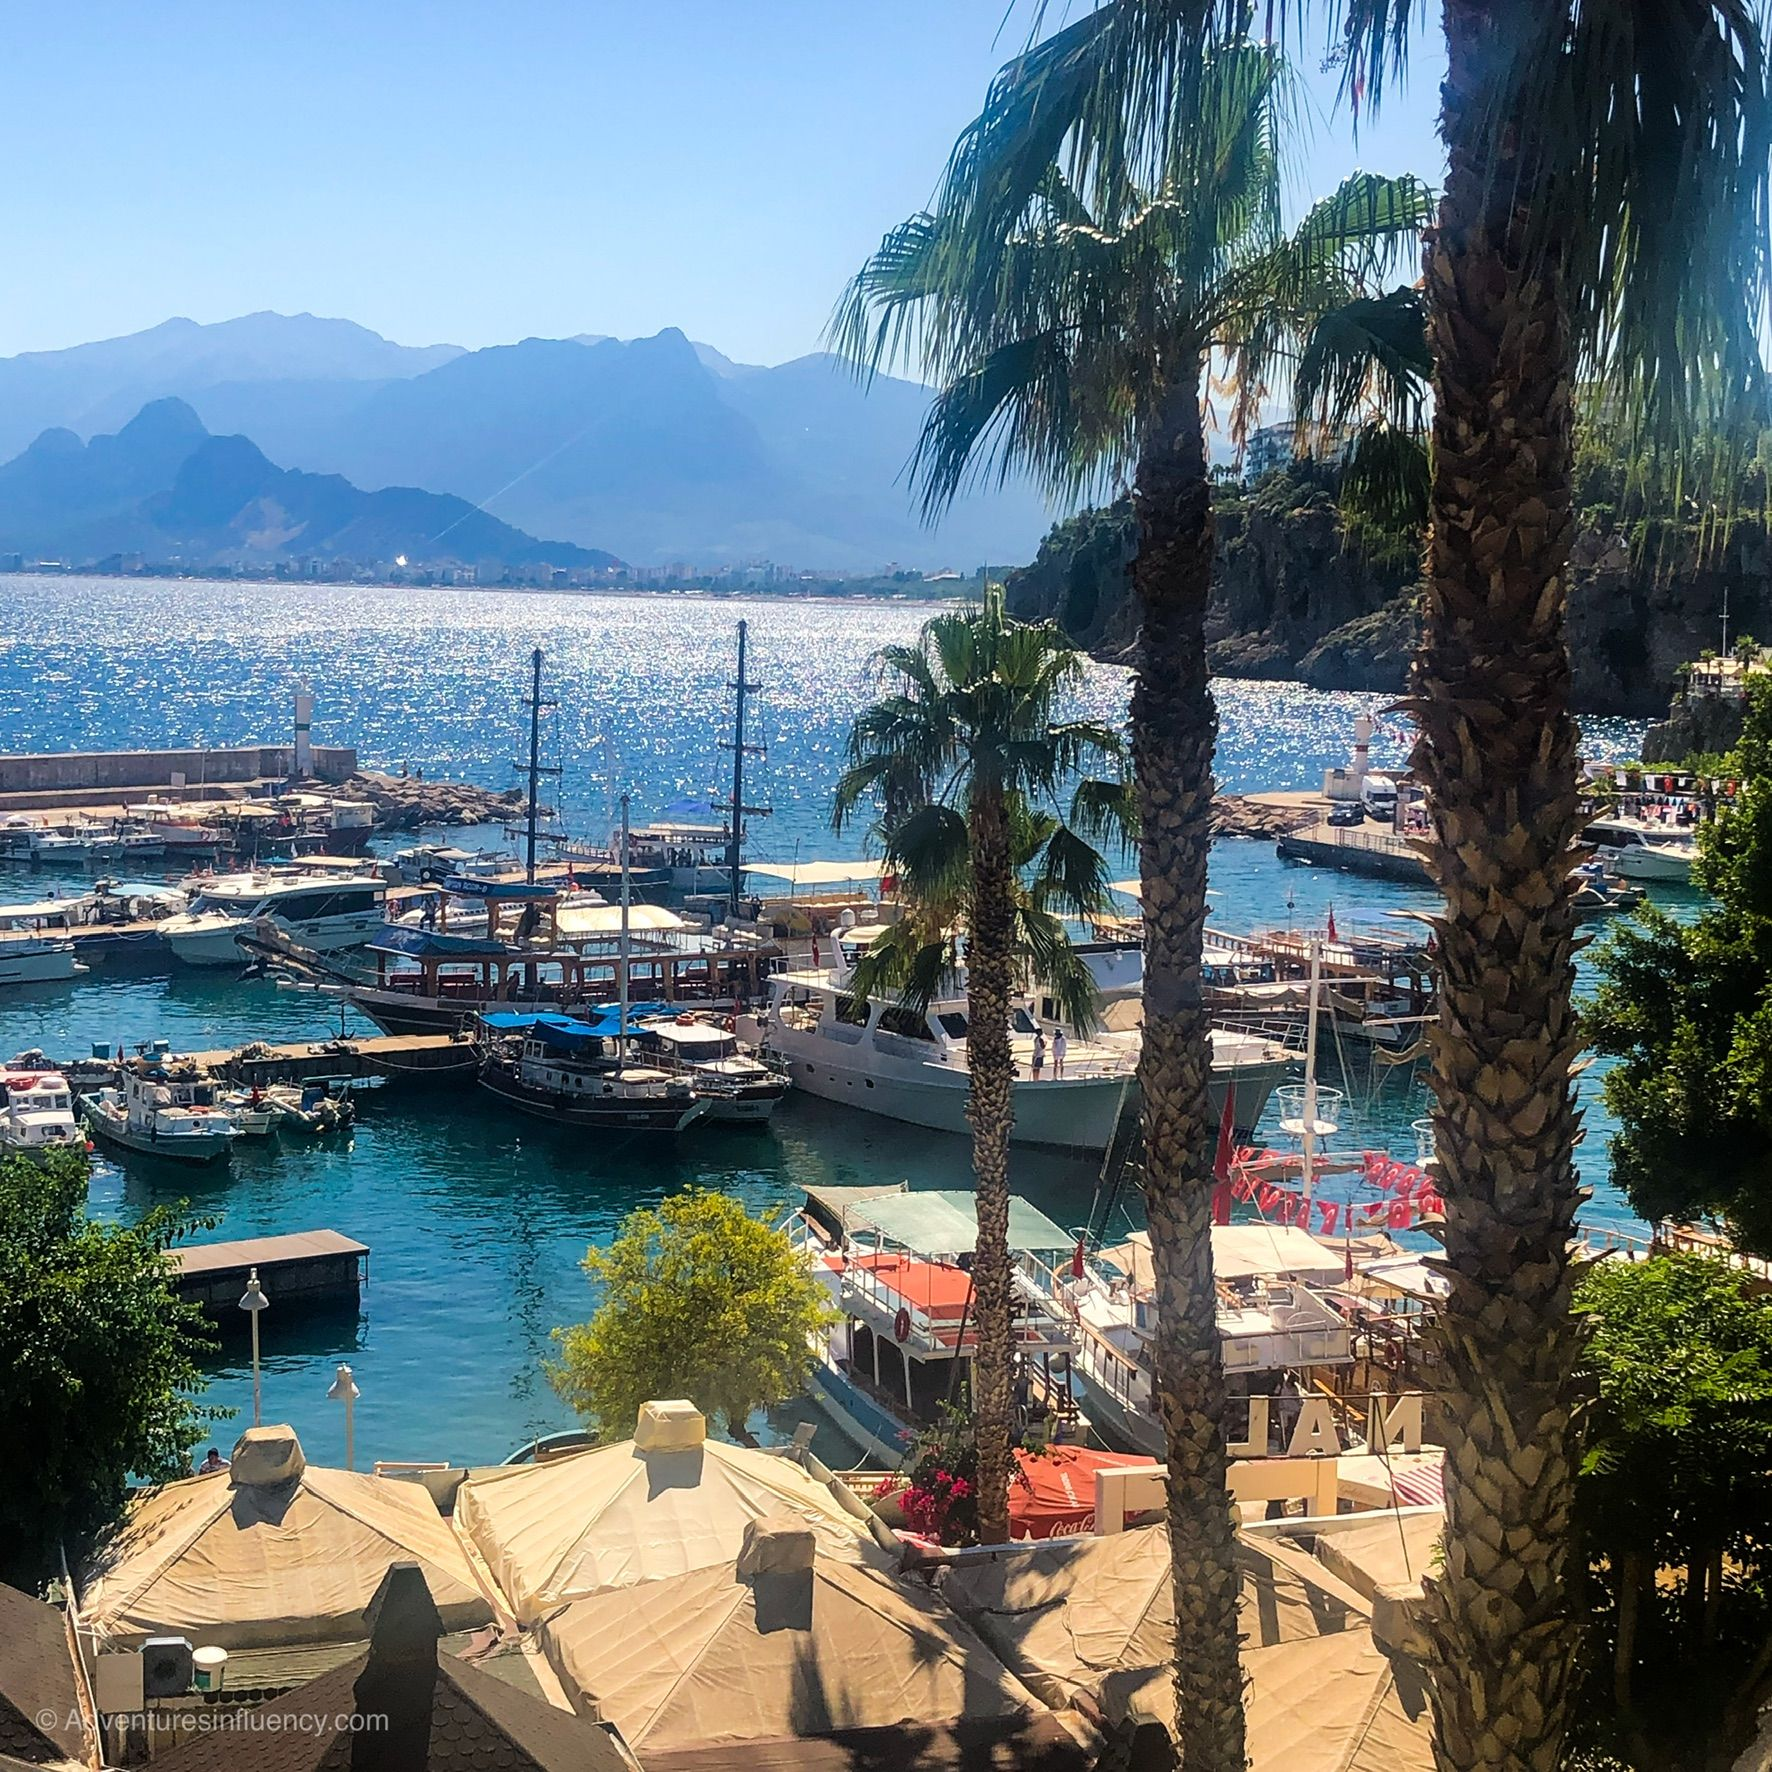 Antalya Is Cok Guzel Very Beautiful Antalya Beautiful Places To Travel Cool Places To Visit